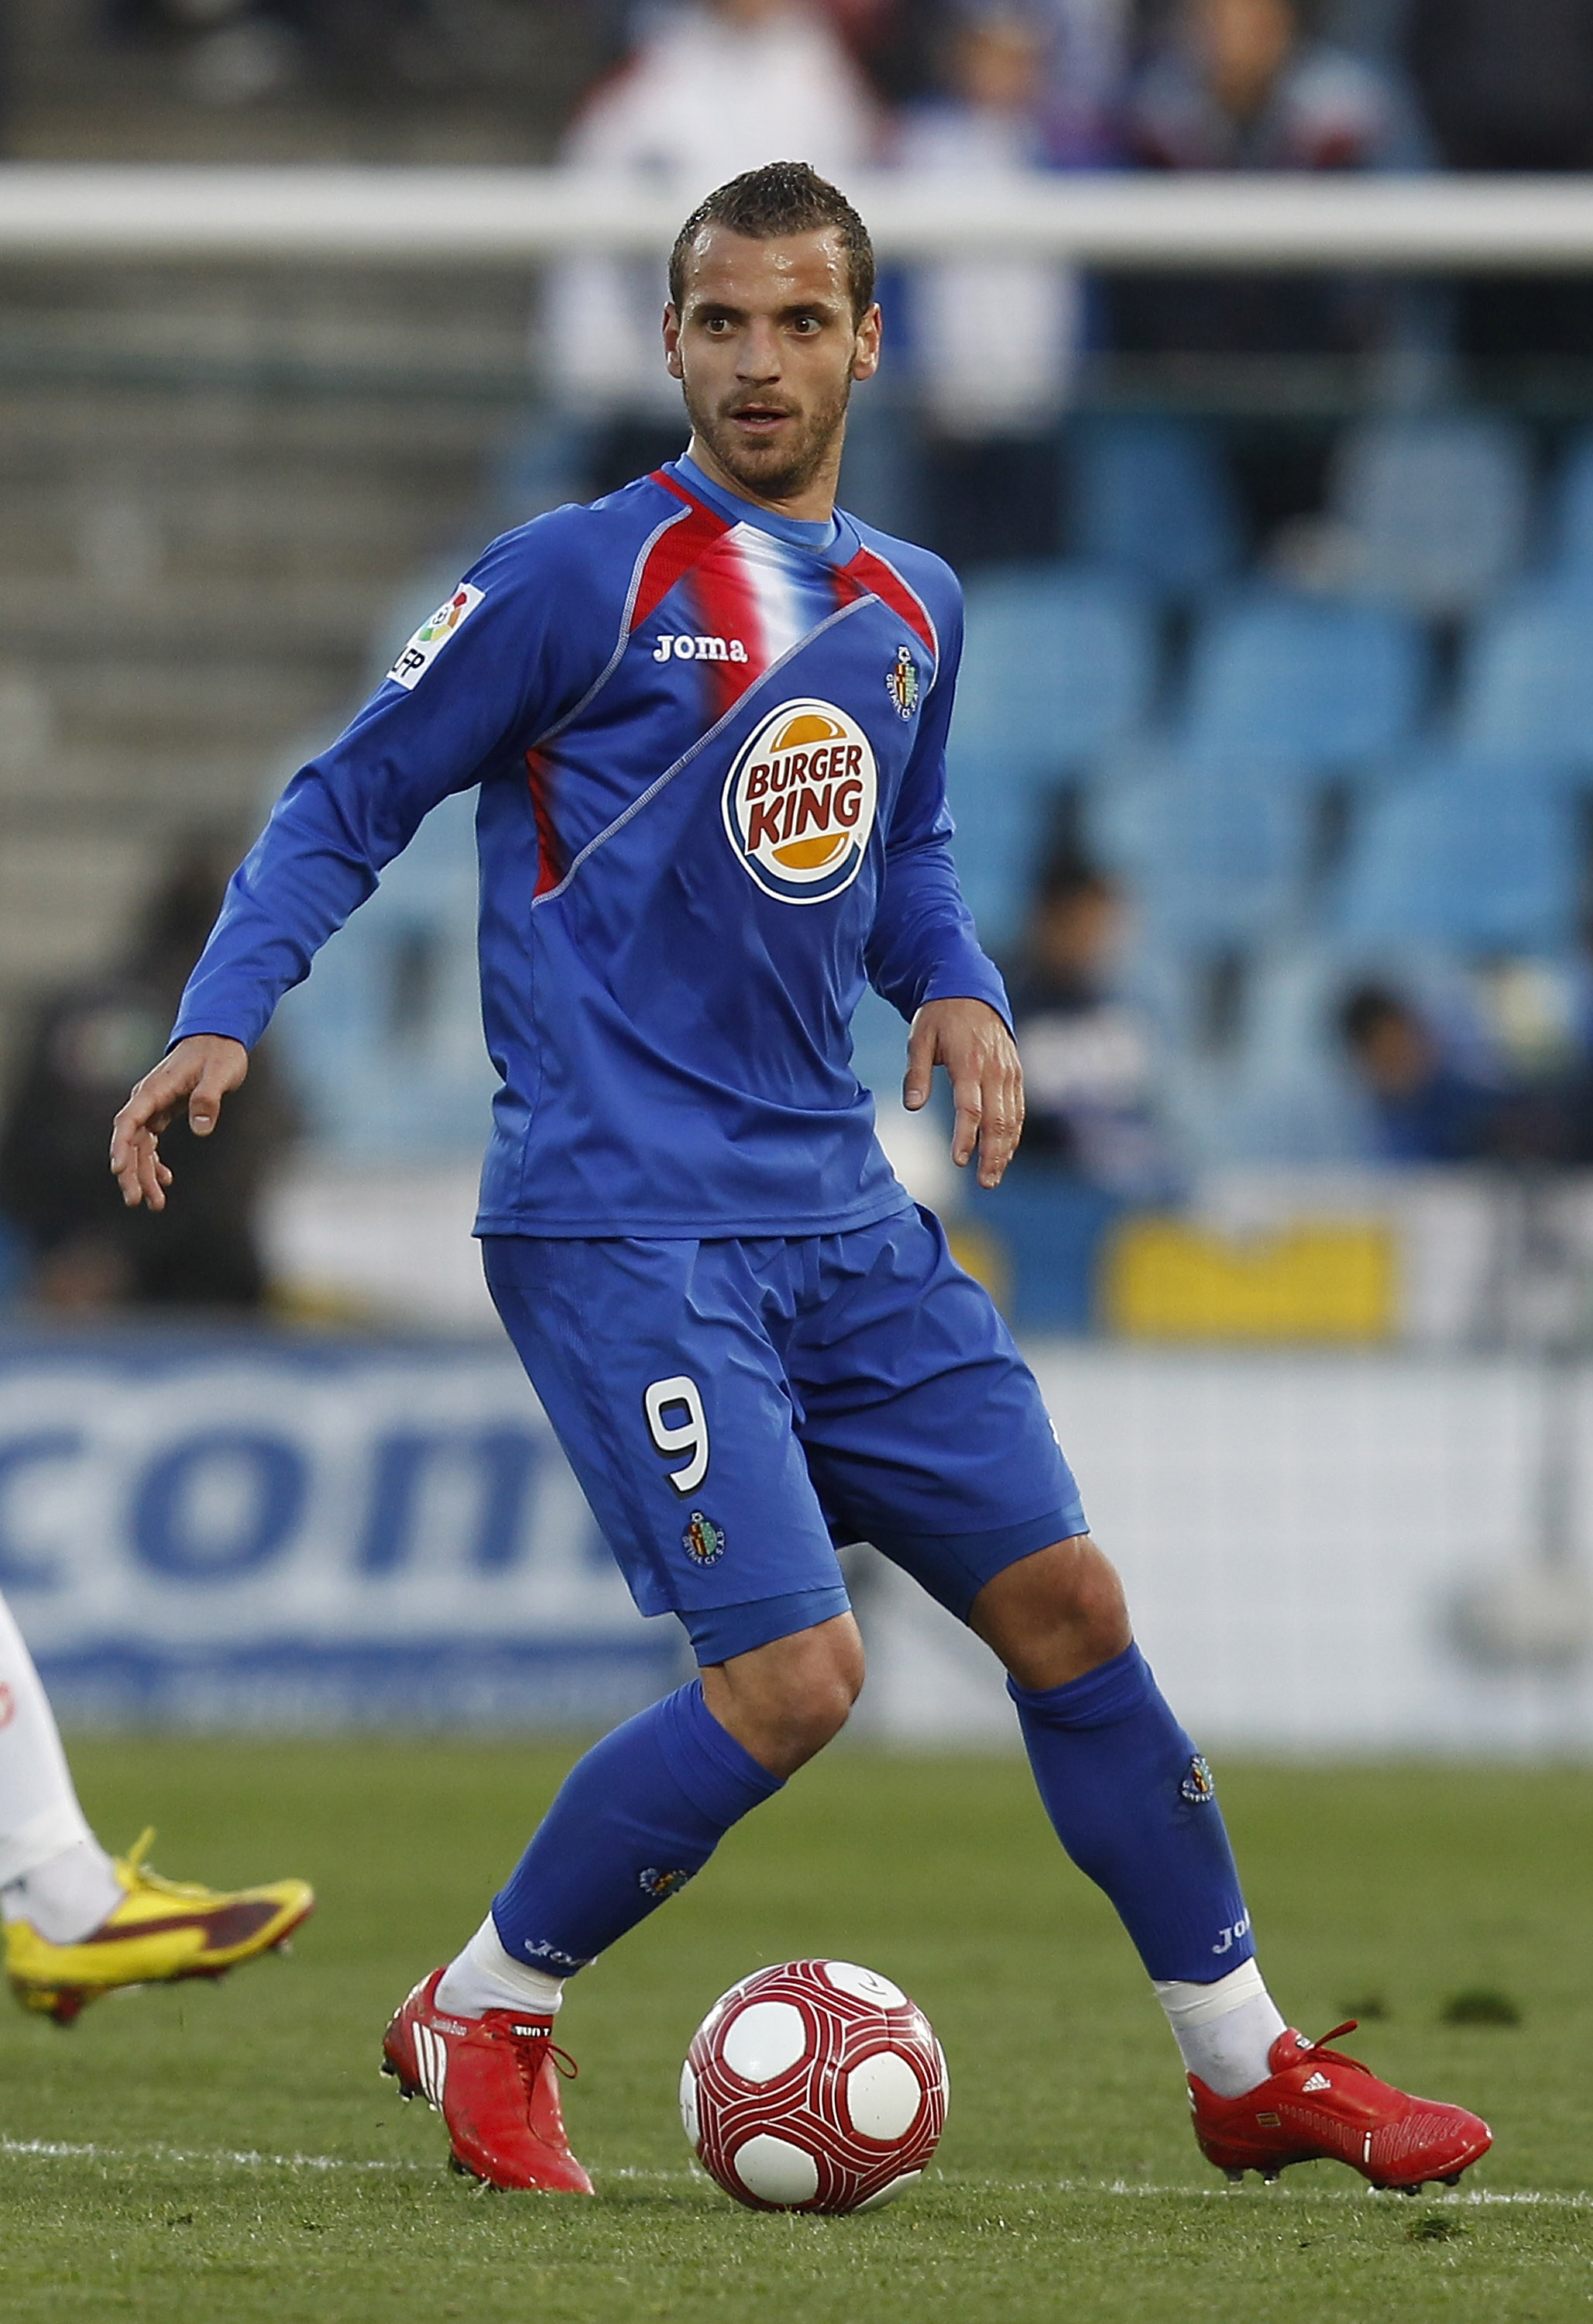 GETAFE, SPAIN - MARCH 13: Roberto Soldado of Getafe in action during the La Liga match between Getafe and Mallorca at Coliseum Alfonso Perez on March 13, 2010 in Getafe, Spain.  (Photo by Angel Martinez/Getty Images)